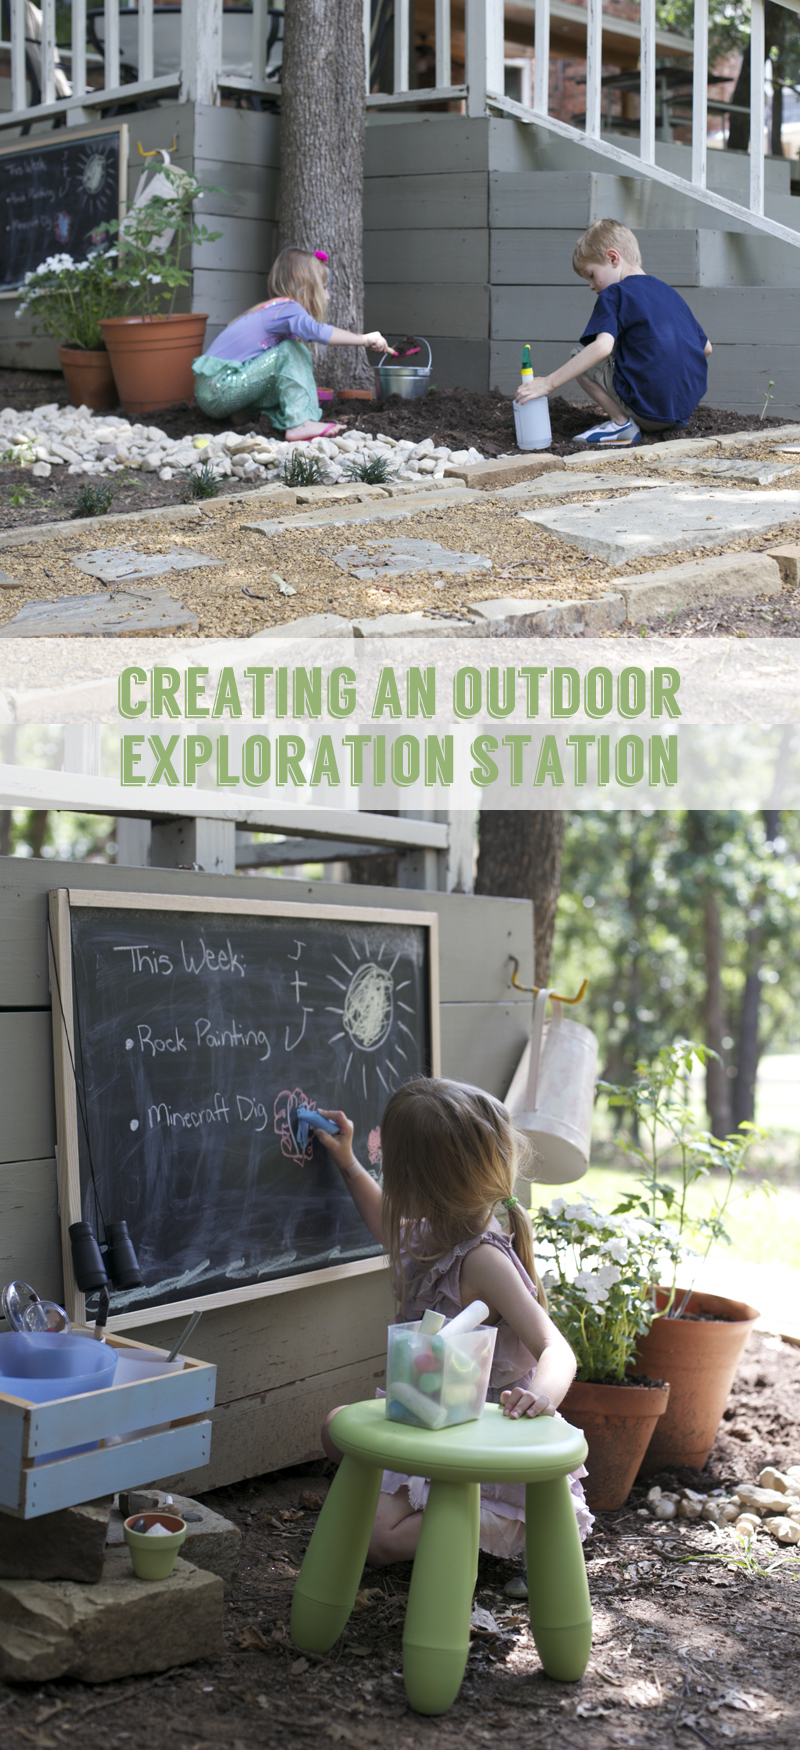 Creating an outdoor exploration station in your backyard.